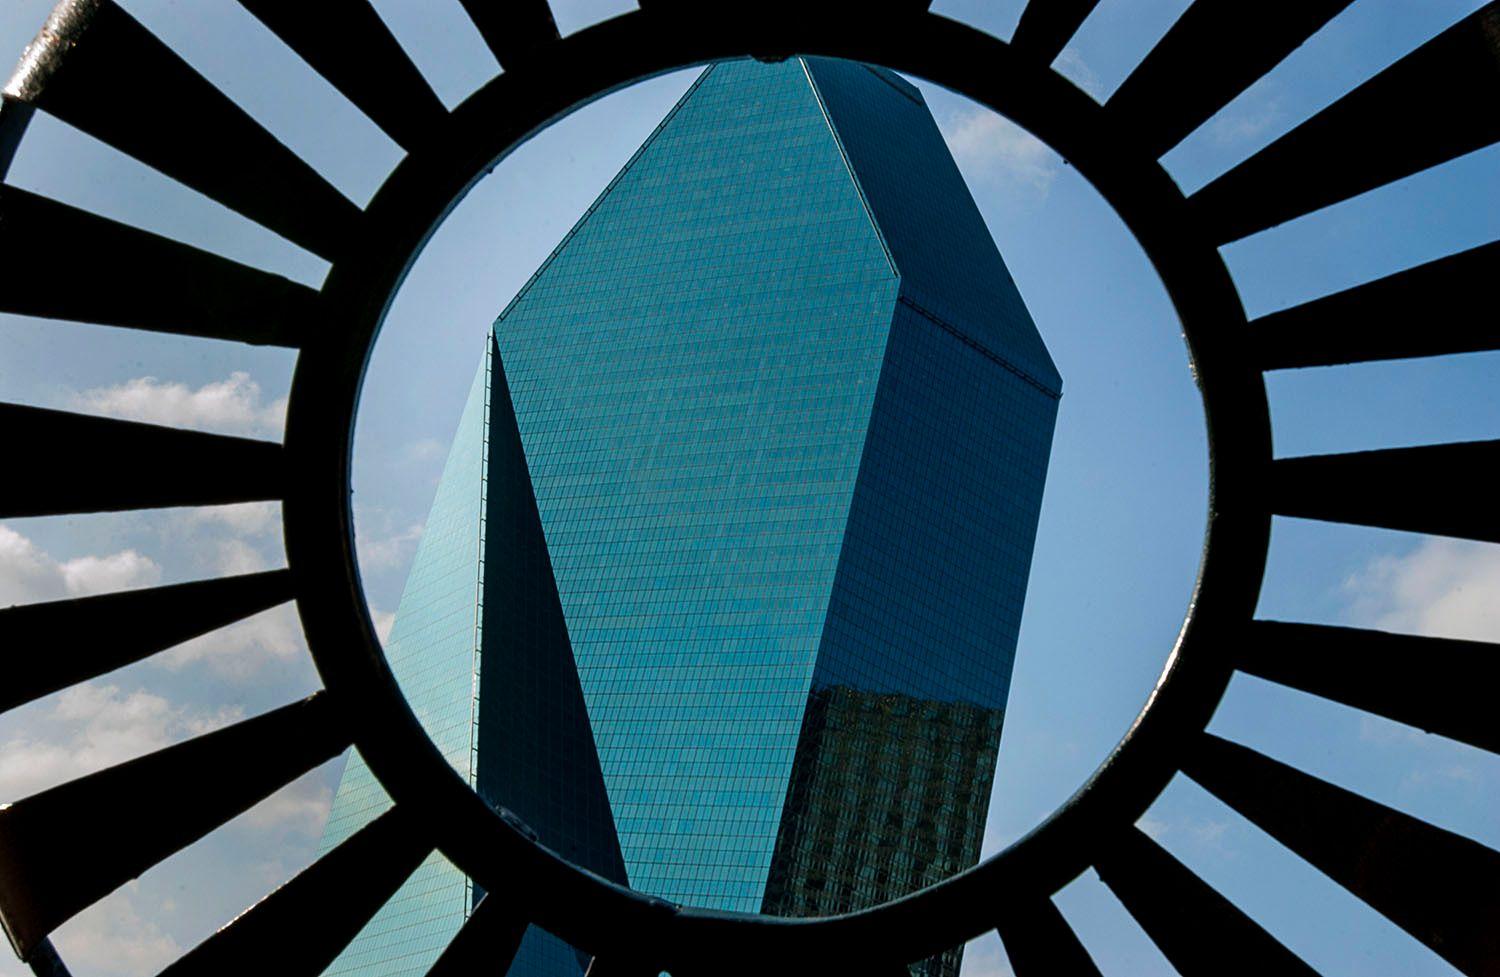 Office Tower in Dallas Texas